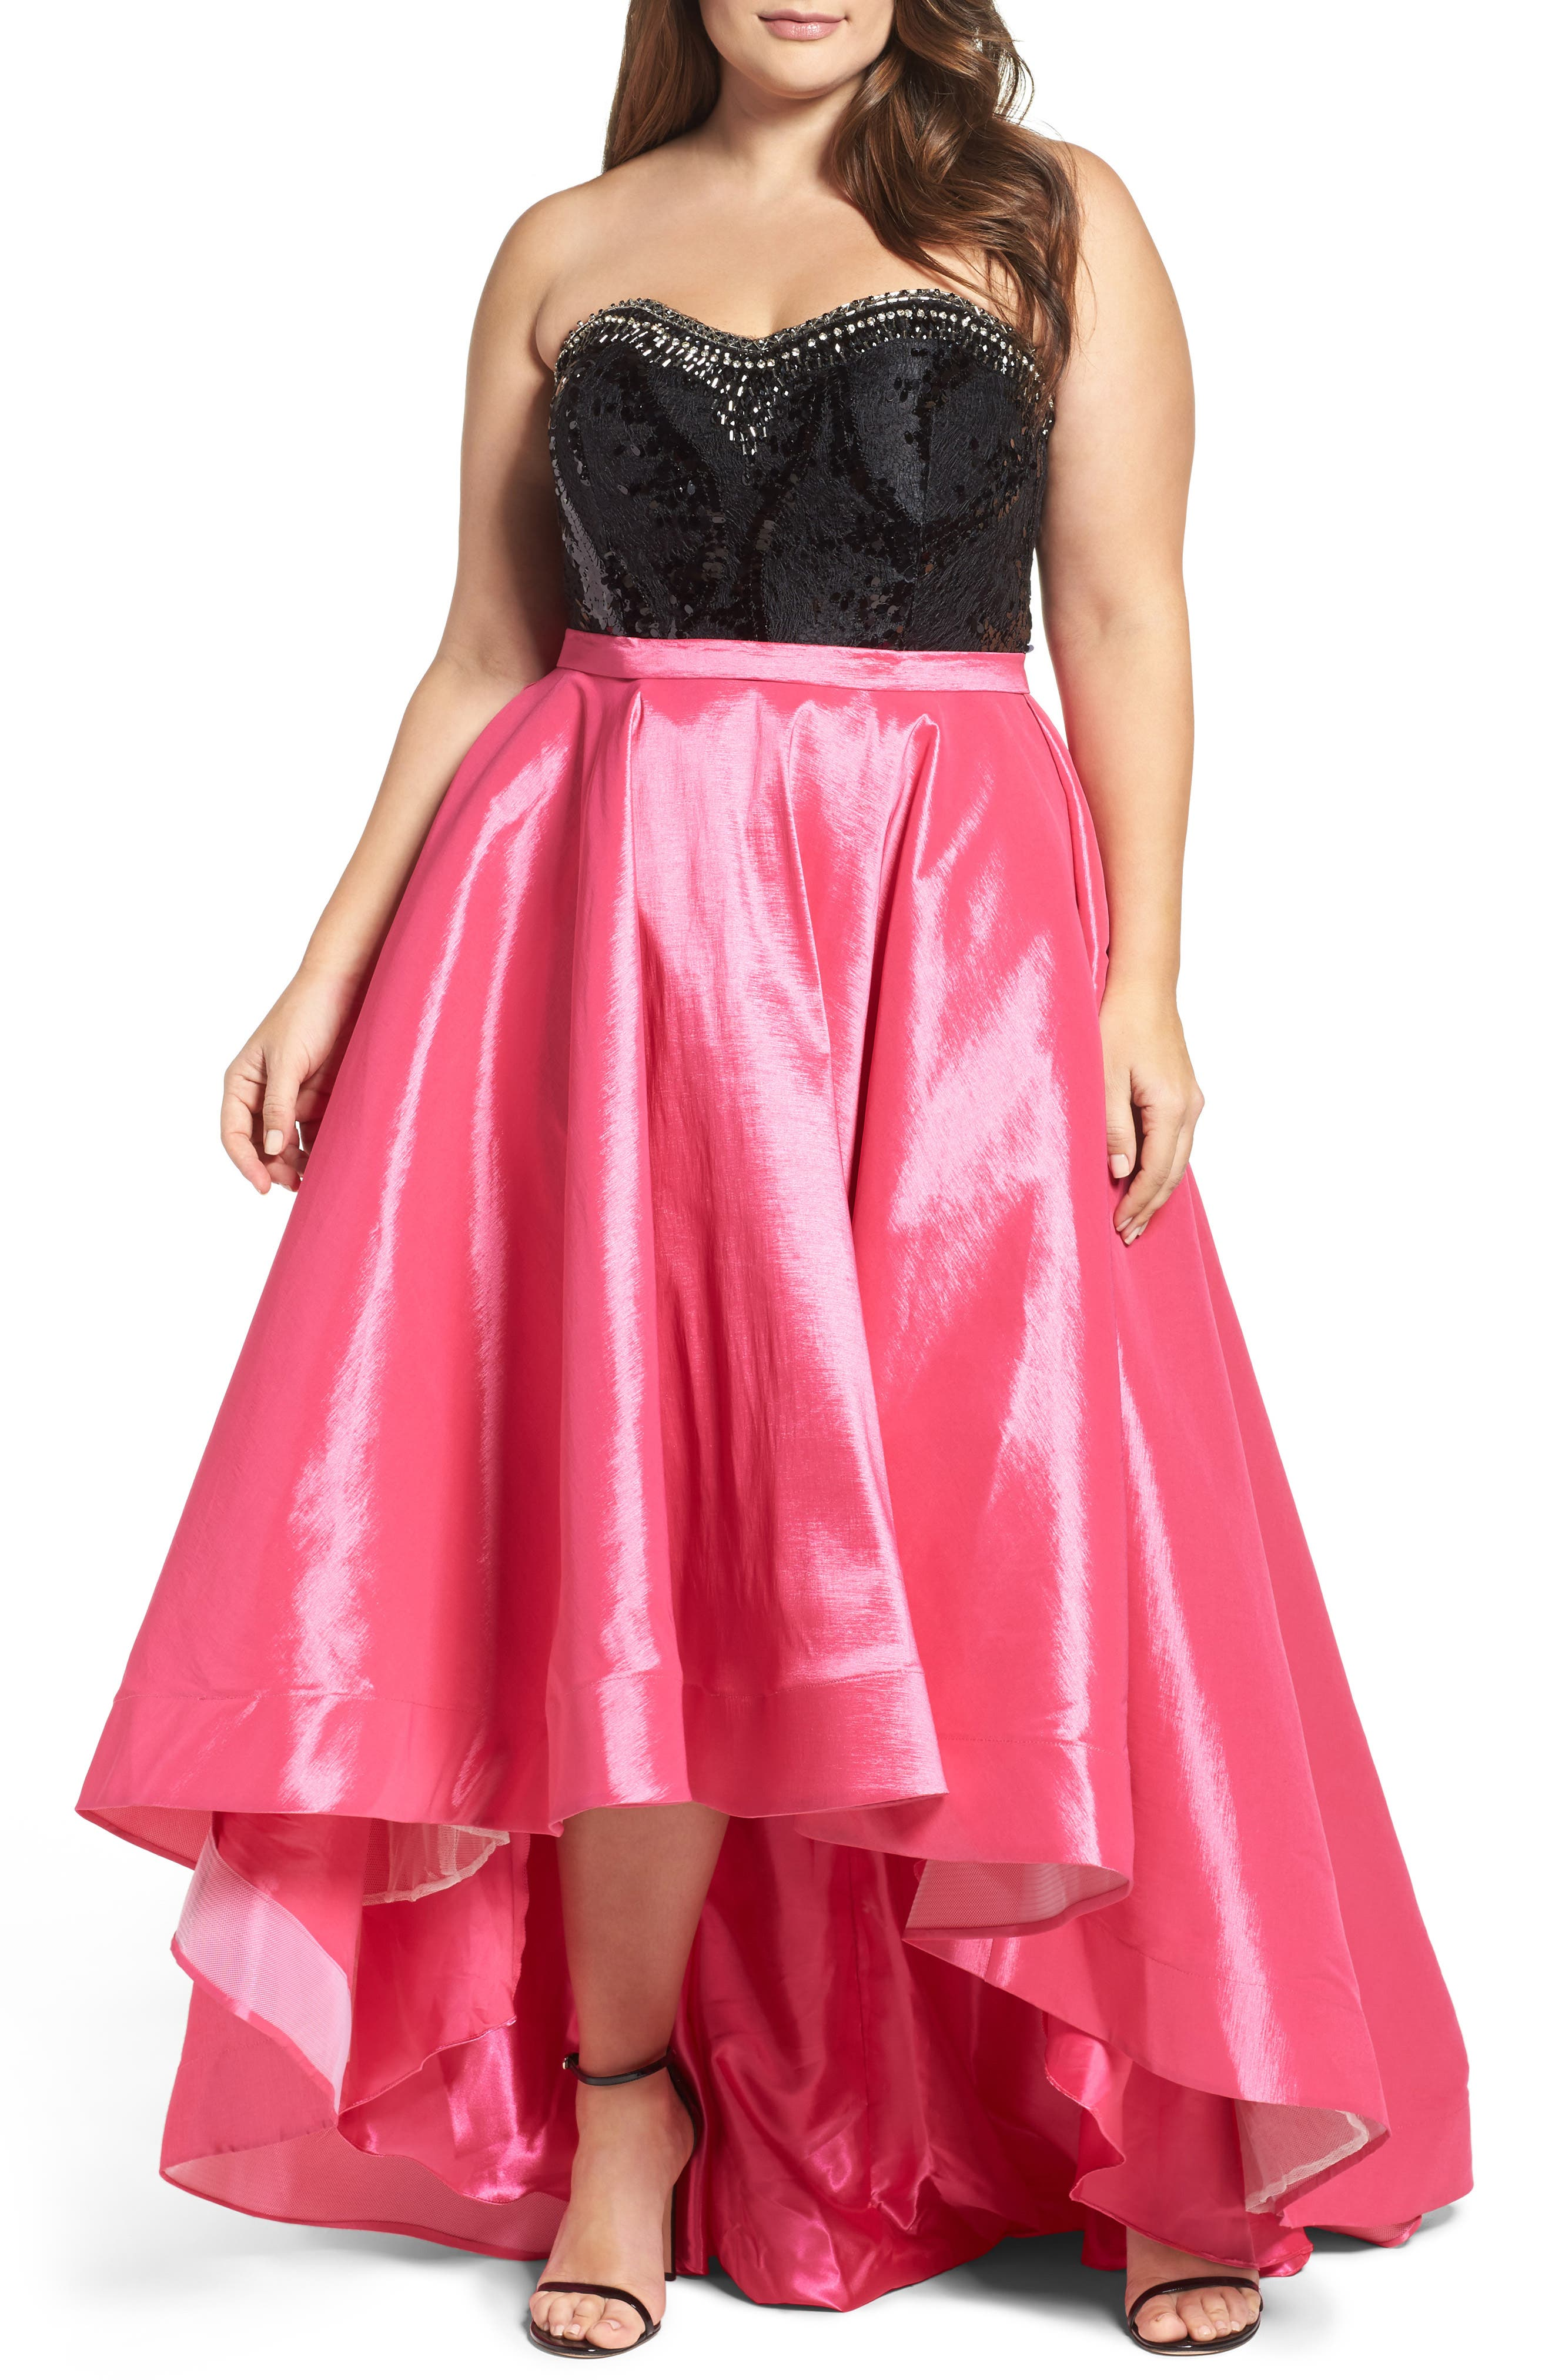 Embellished Lace & Taffeta Strapless High/Low Gown,                         Main,                         color, Hot Pink/ Black